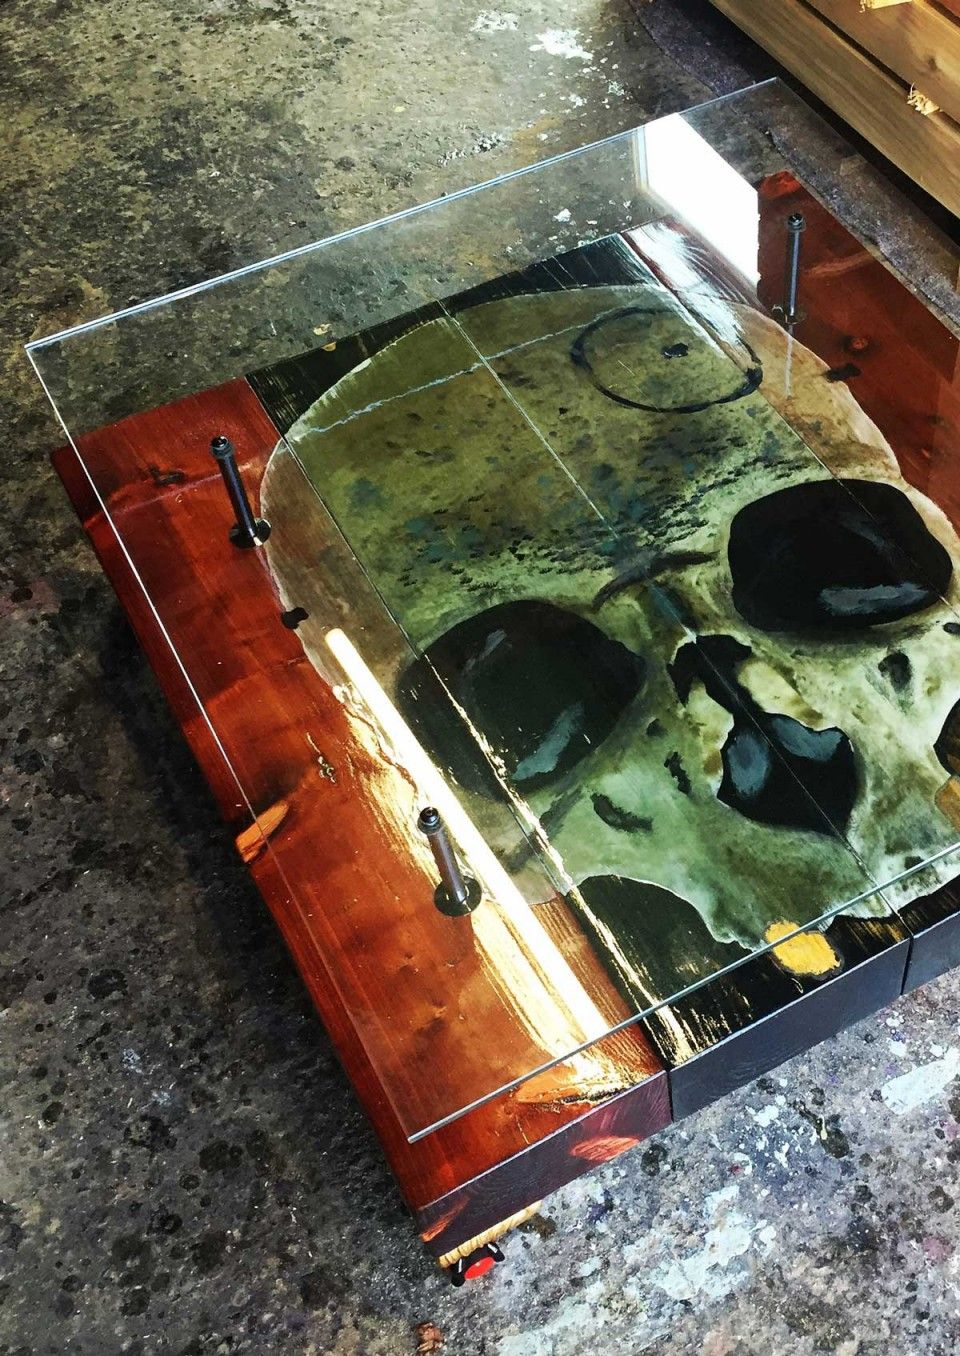 This Beautiful Bespoke Glass Top Gothic Skull Coffee Table By Cappa E Spada Is A Gorgeous Vintage Pi Automotive Decor Furniture Design Modern Alternative Decor [ 1356 x 960 Pixel ]